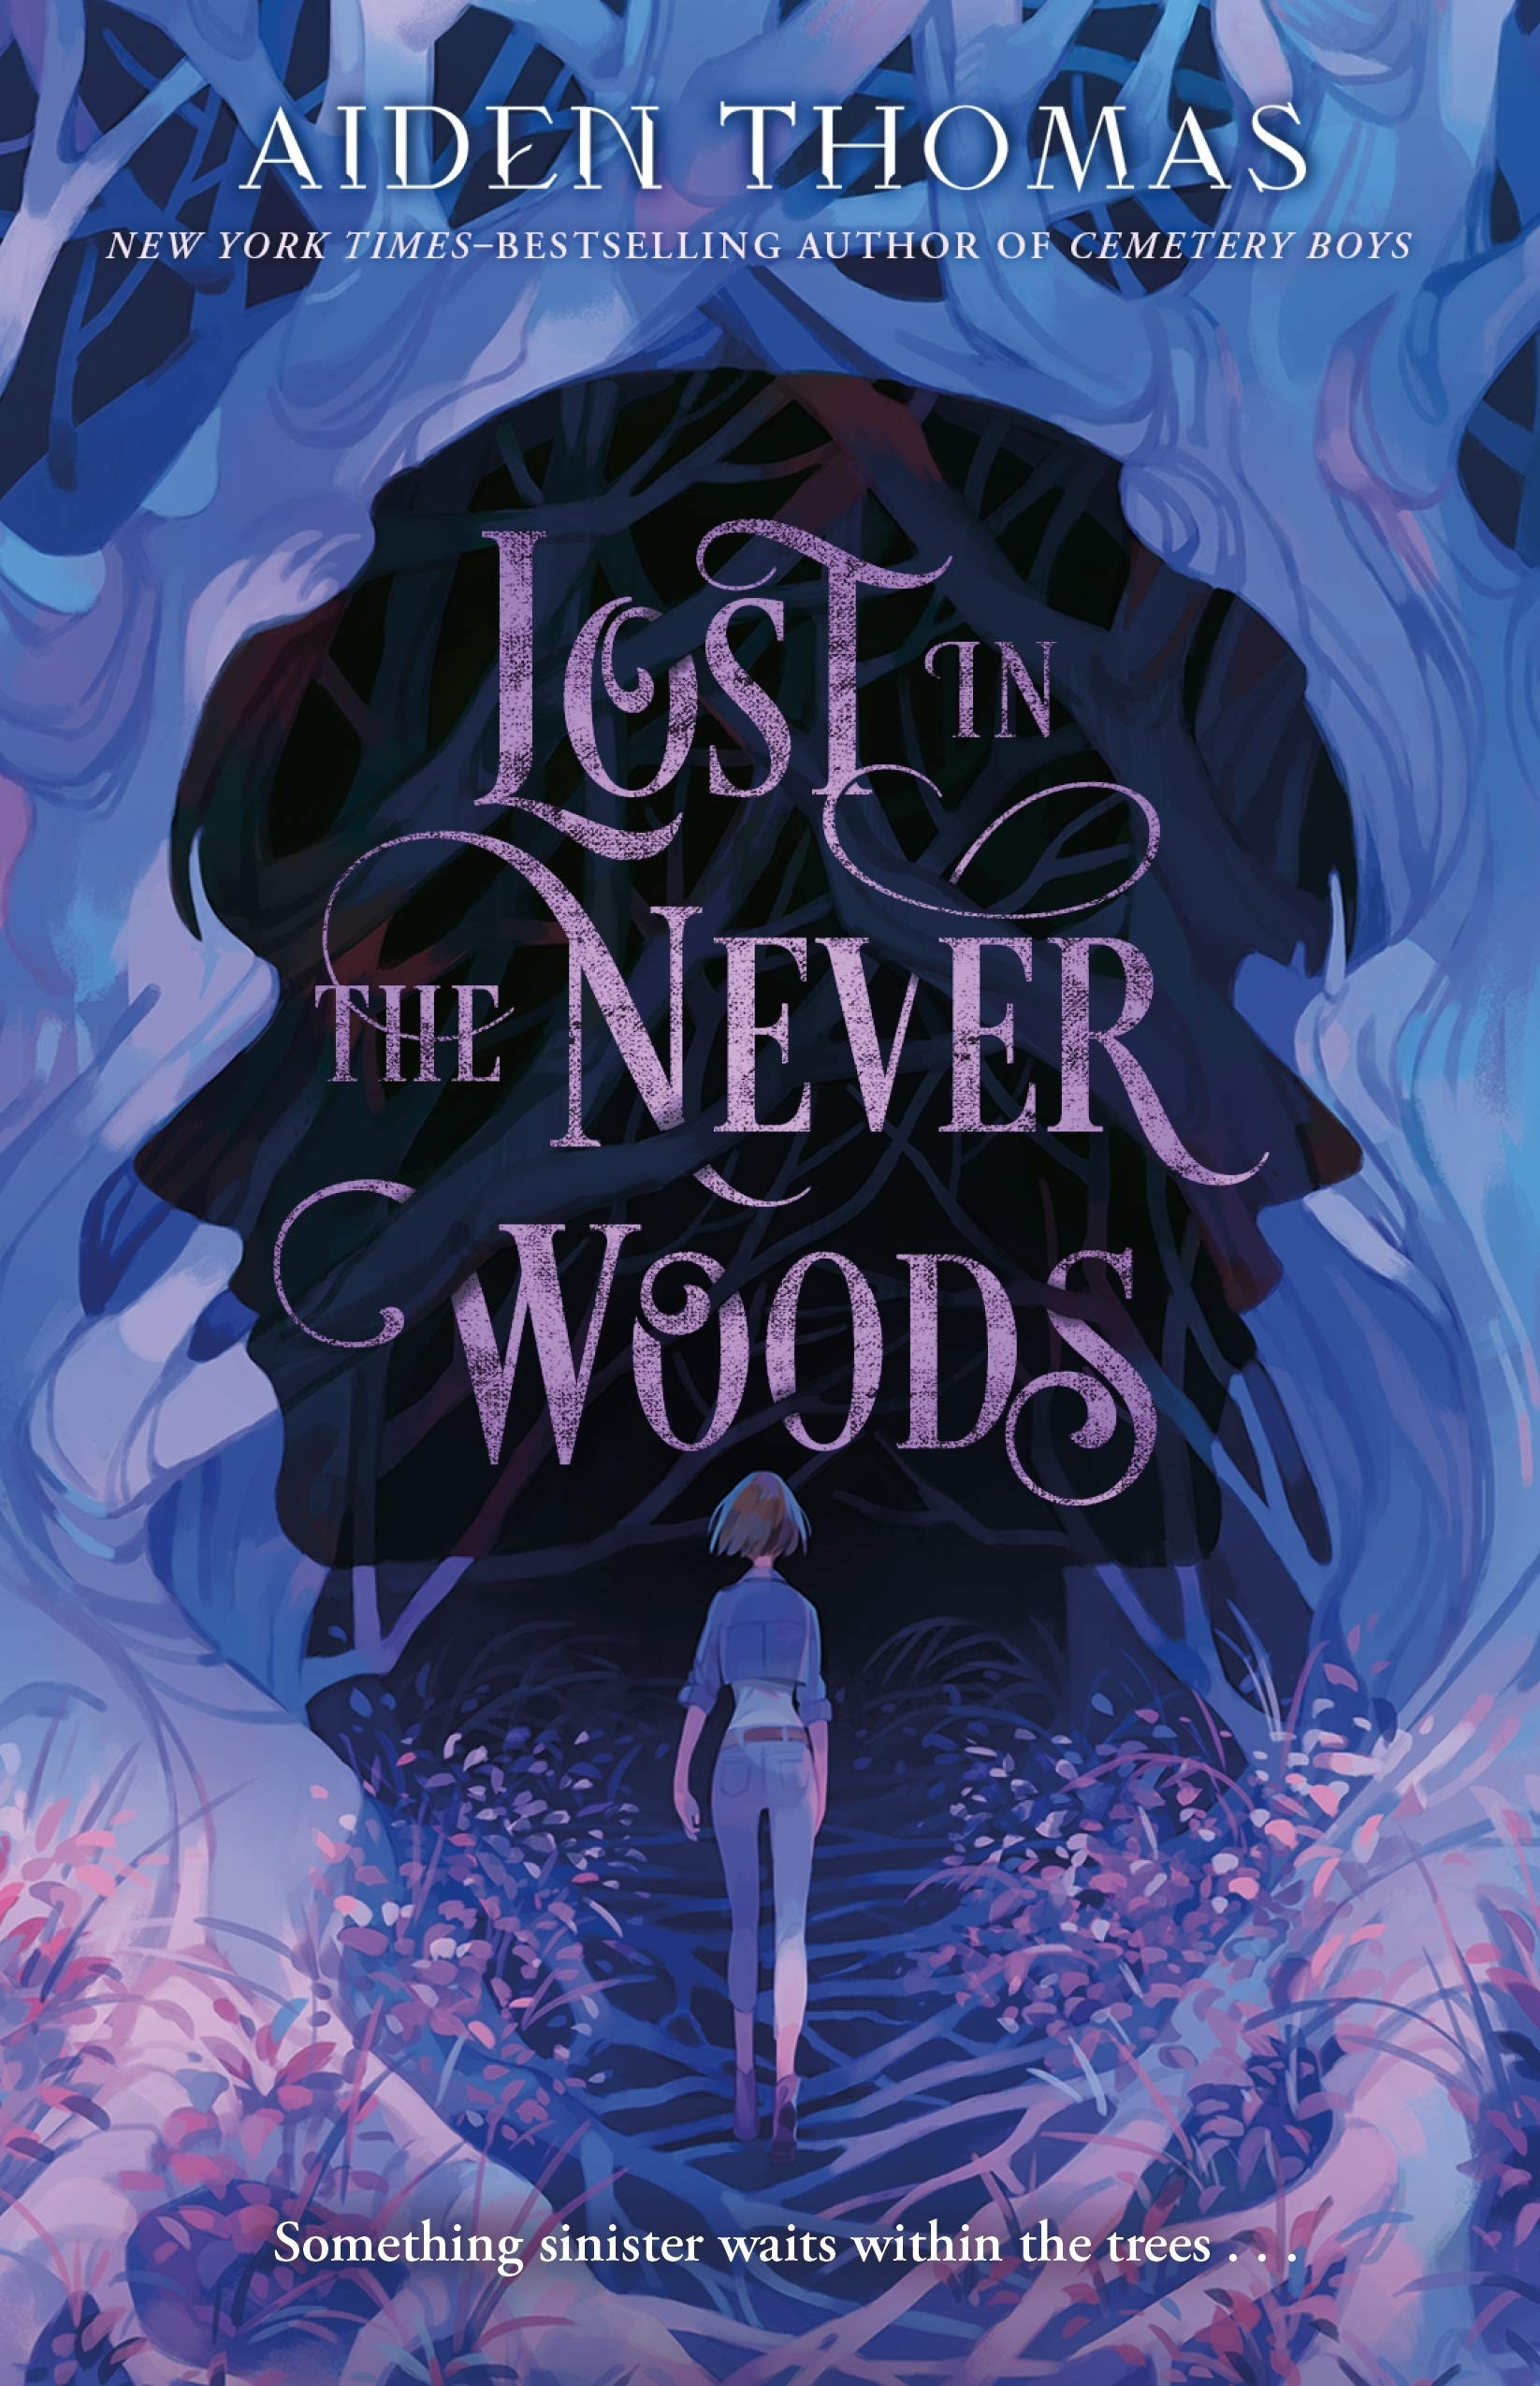 Amazon.com: Lost in the Never Woods: 9781250313973: Thomas, Aiden: Books